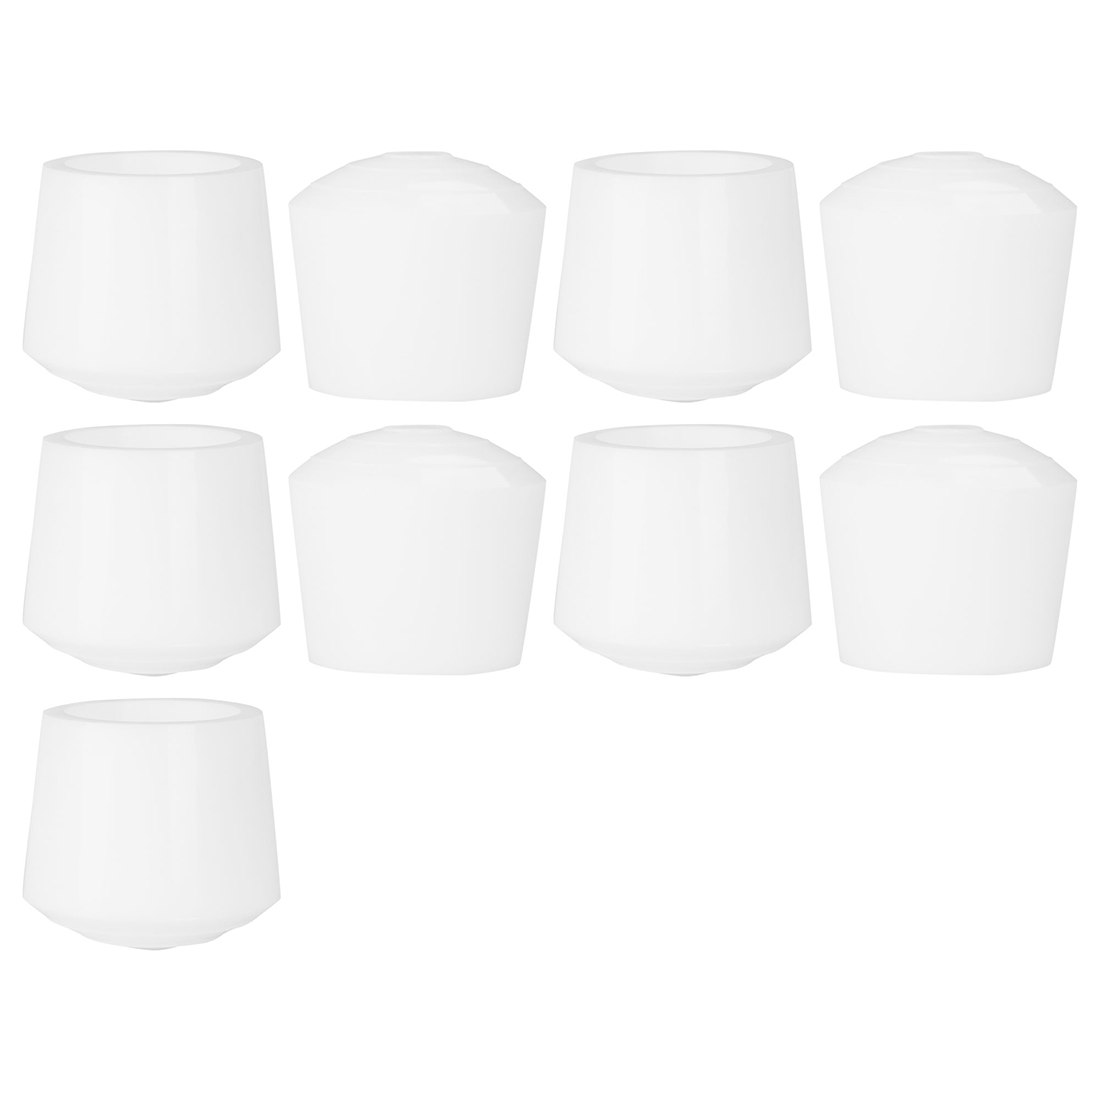 "Rubber Leg Caps Tip Cup Feet Cover 35mm 1 3/8"" Inner Dia 9pcs for Furniture"